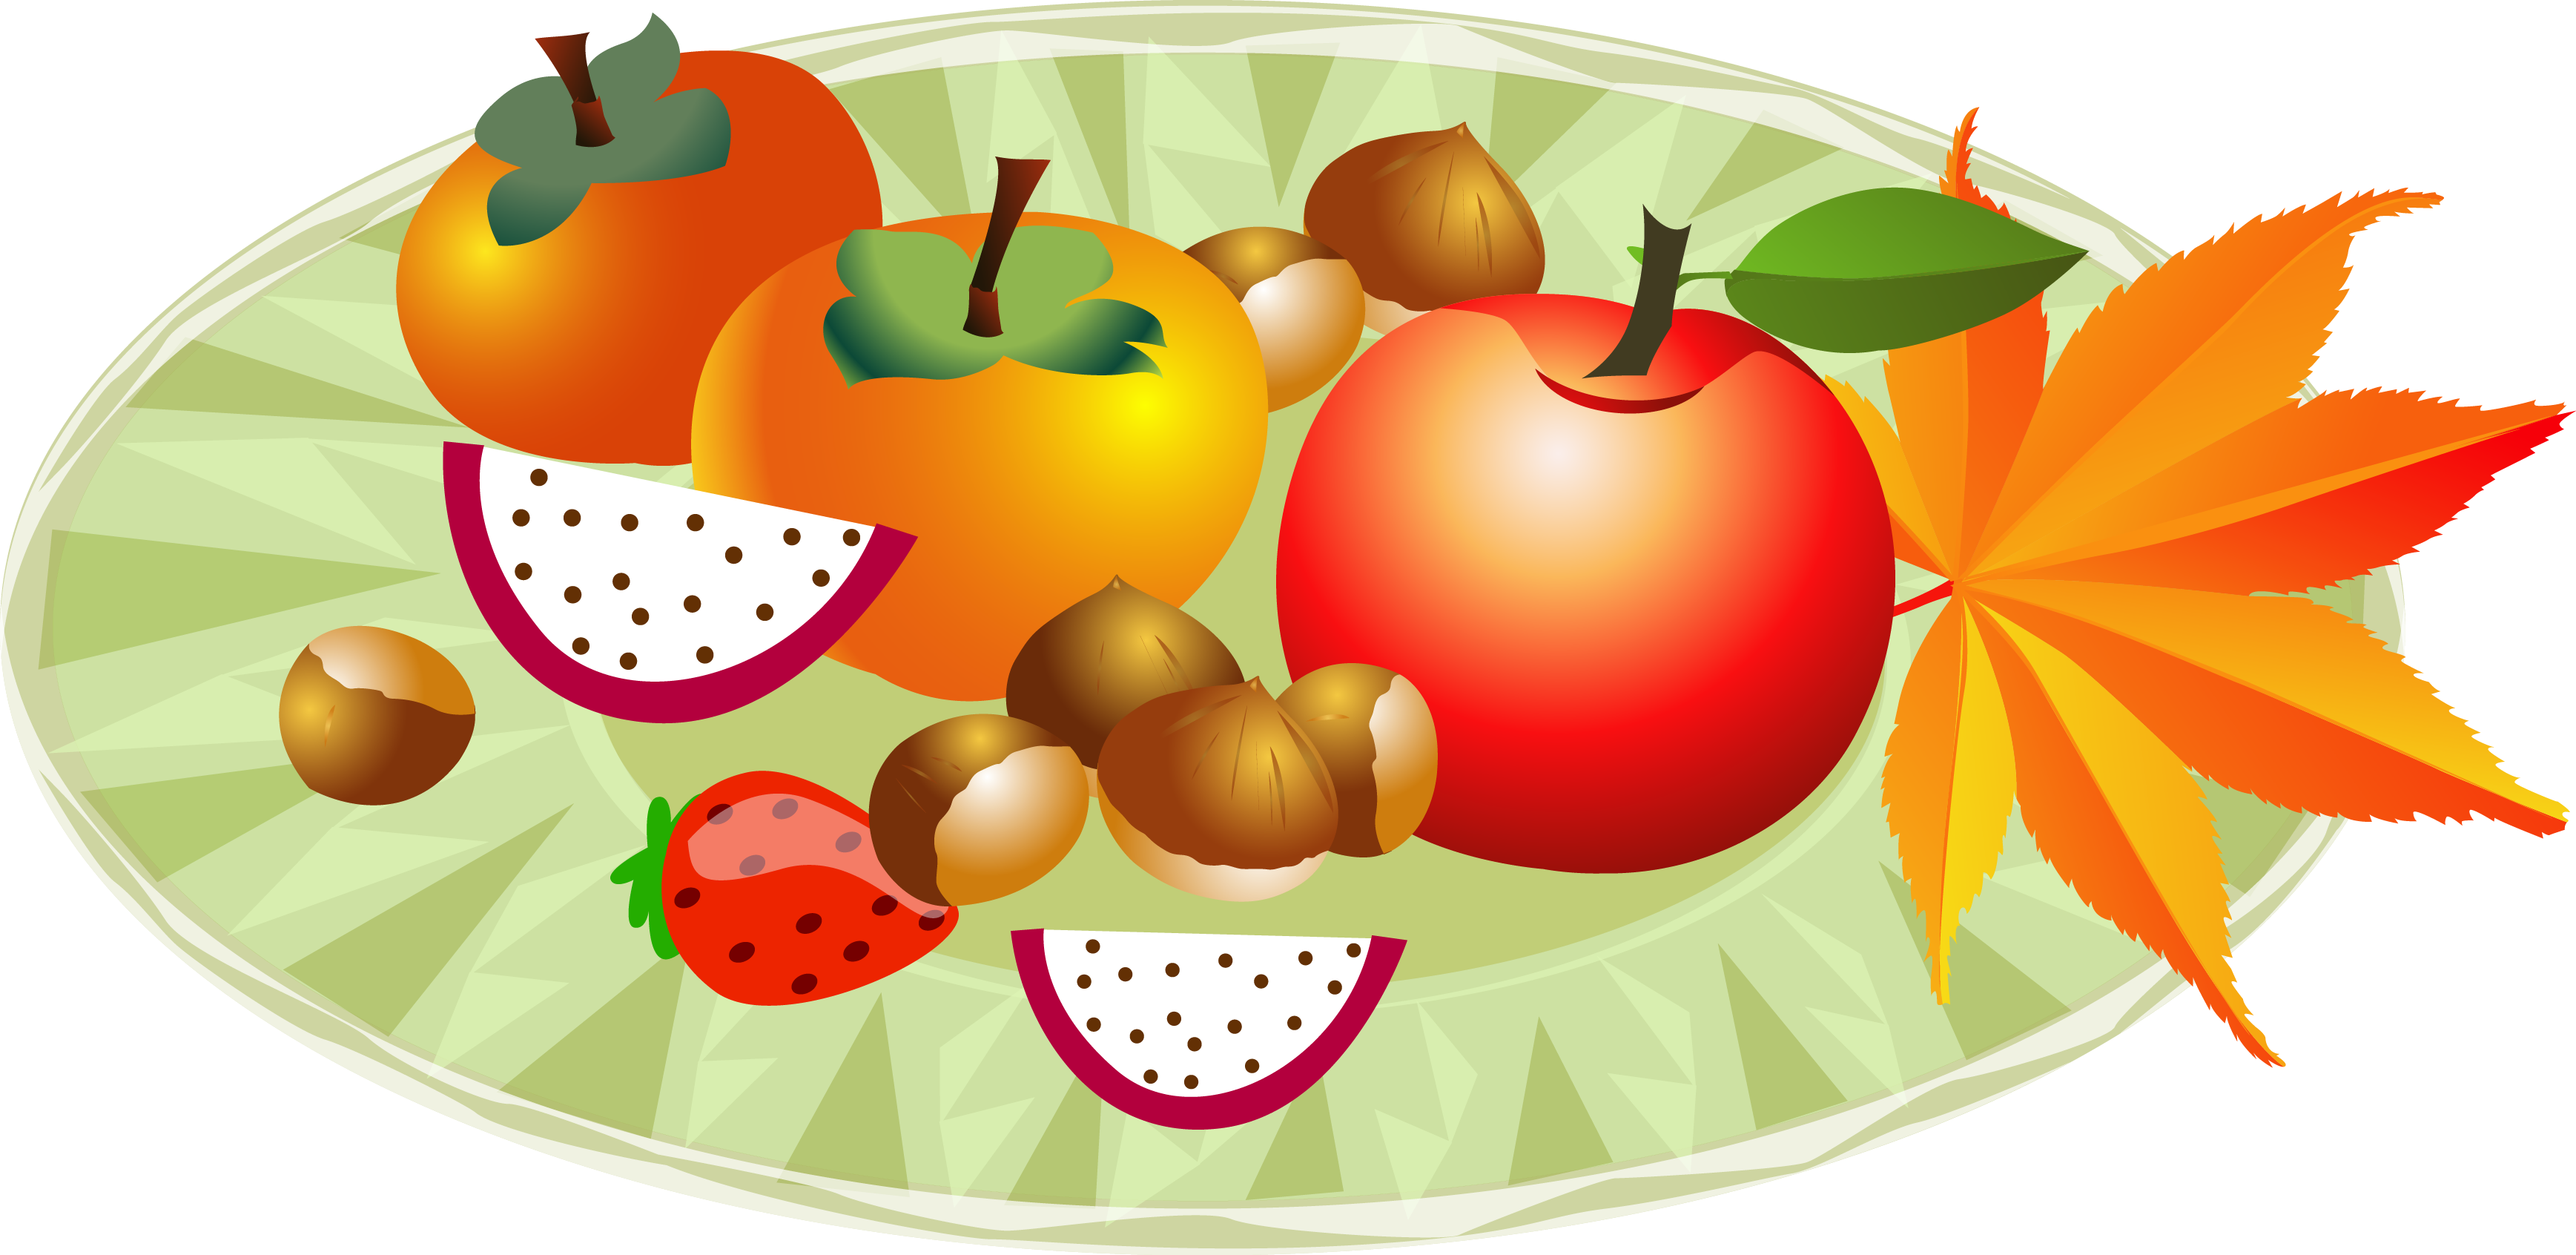 Illustration harvest transprent png. Grapes clipart autumn fruit